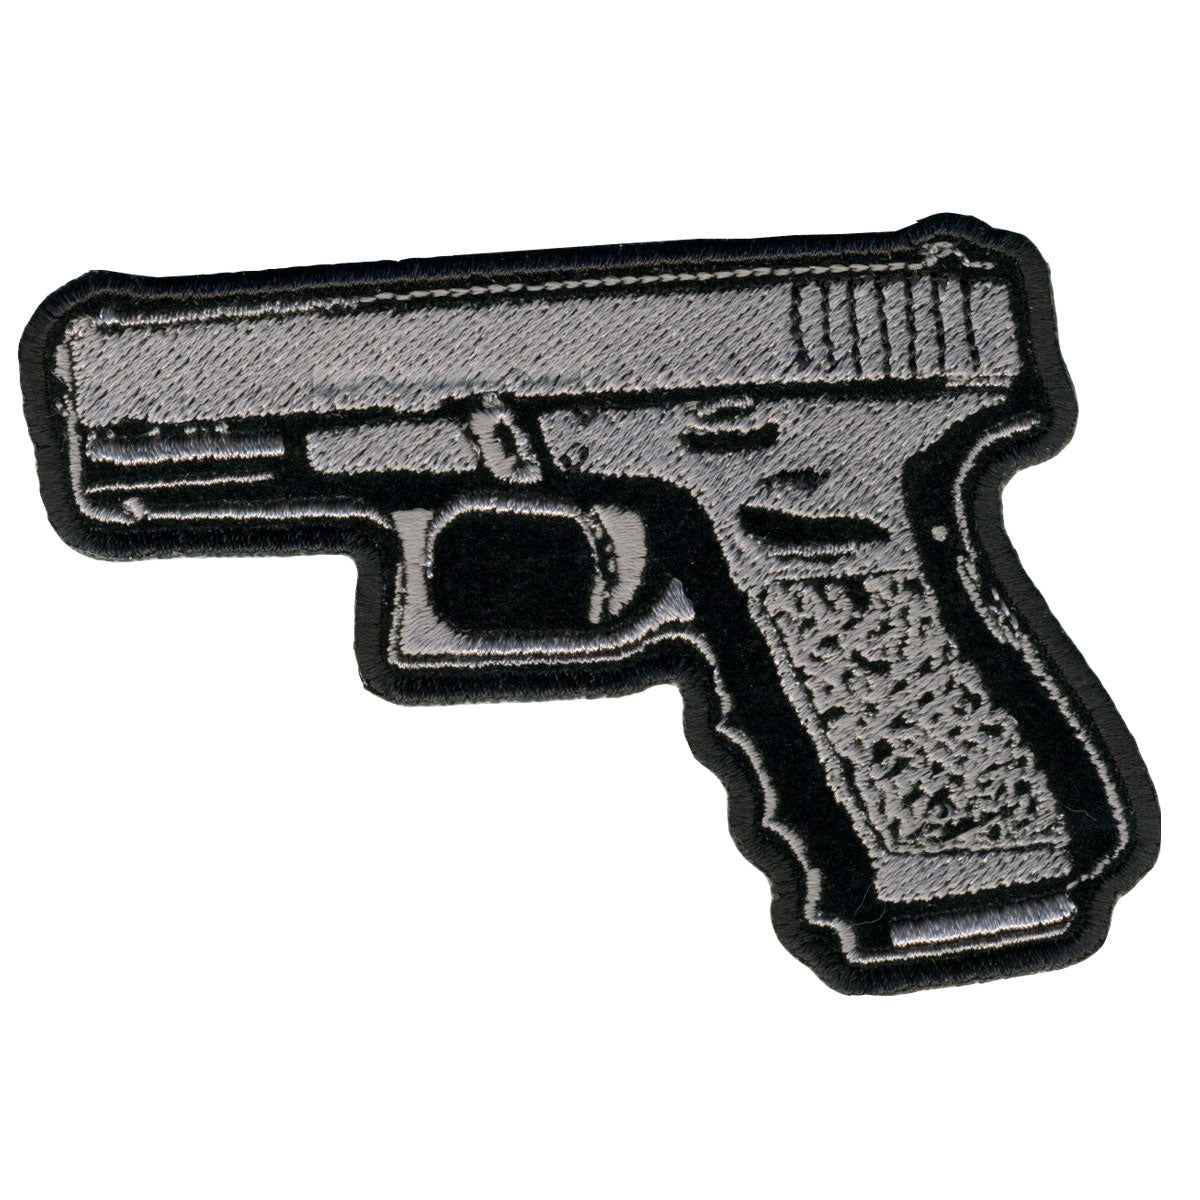 "Hot Leathers Pistol 4"" x 3"" Patch"